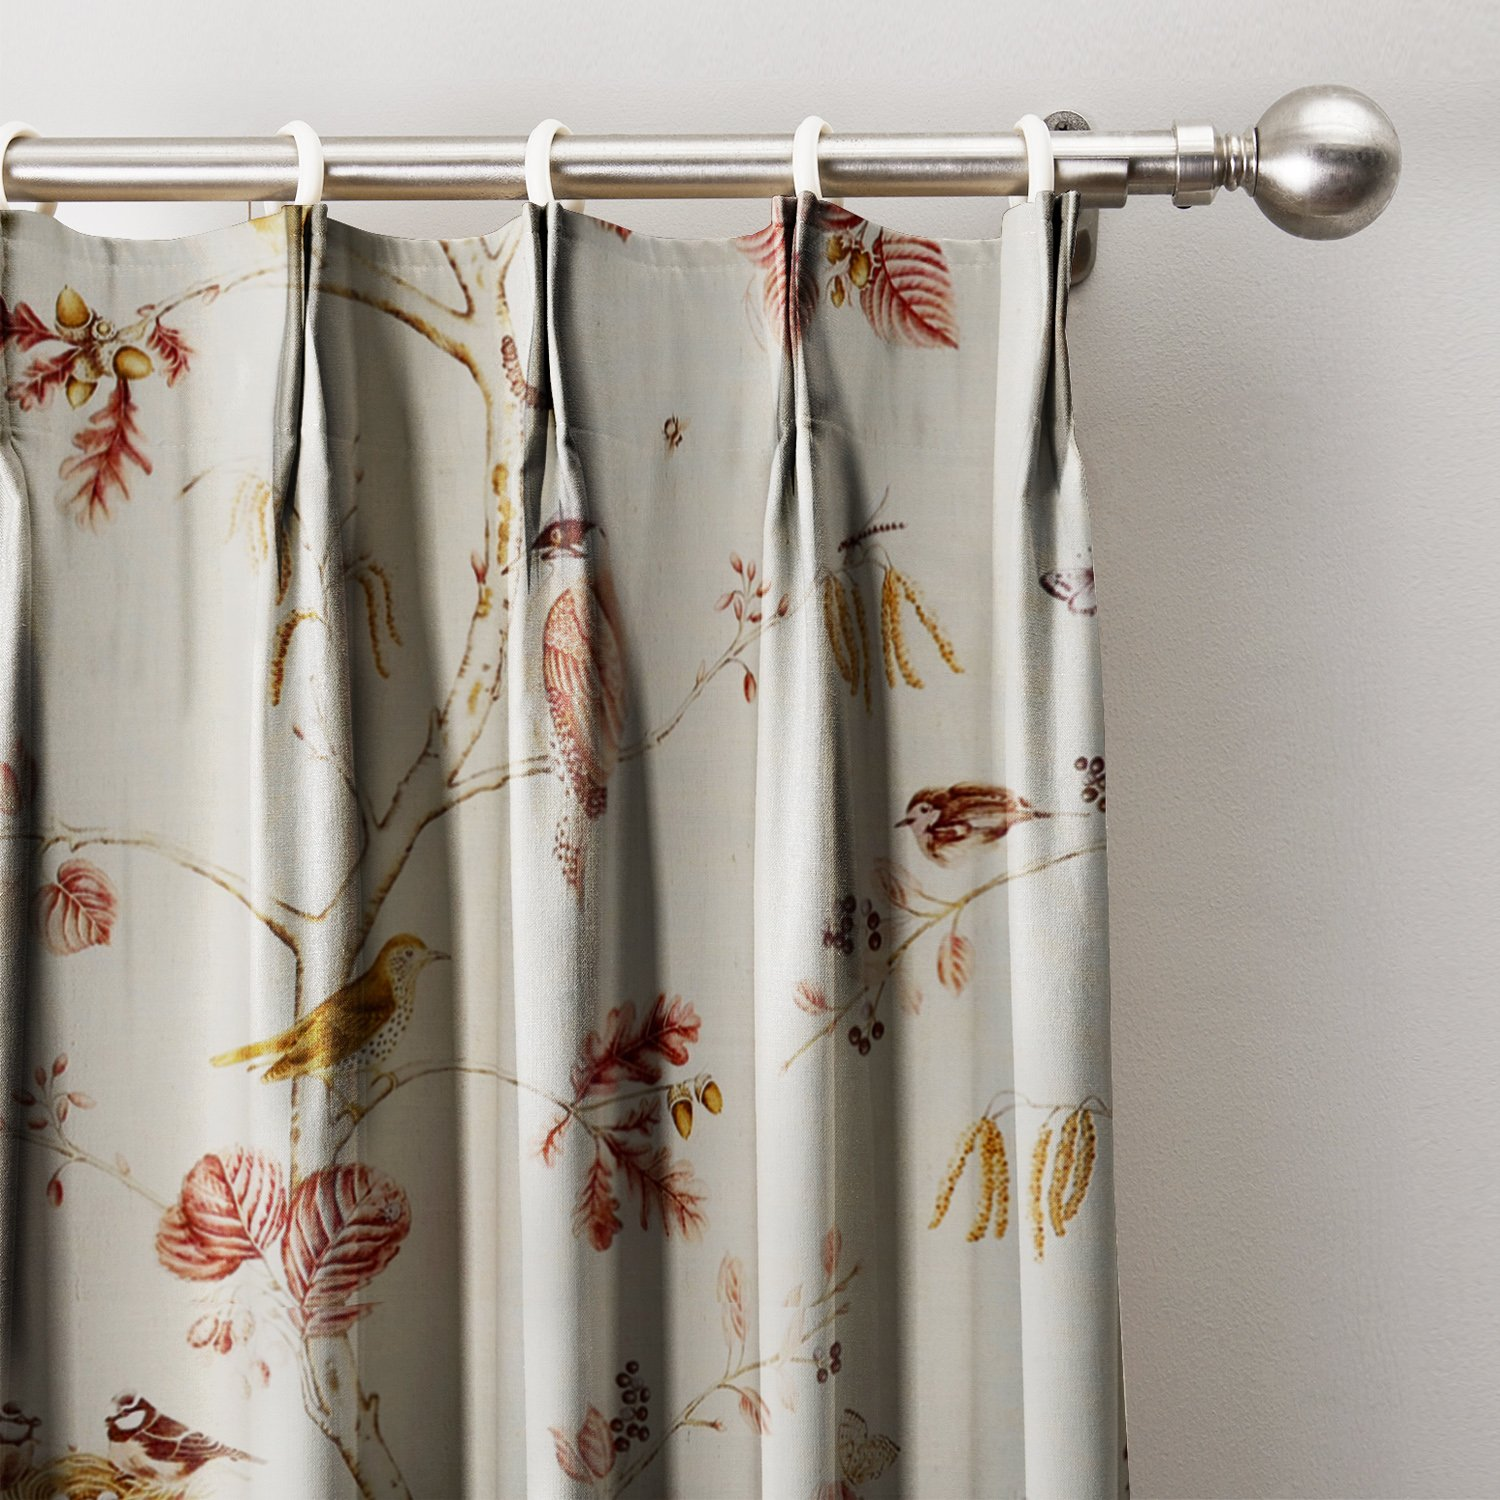 Rural Pastoral Print Window Curtain 120''W x 96''L, Pinch Pleat Blackout Lining Darpes Panel For Bedroom Living Room Hotel Restaurant (1 Panel), BURGUNDY